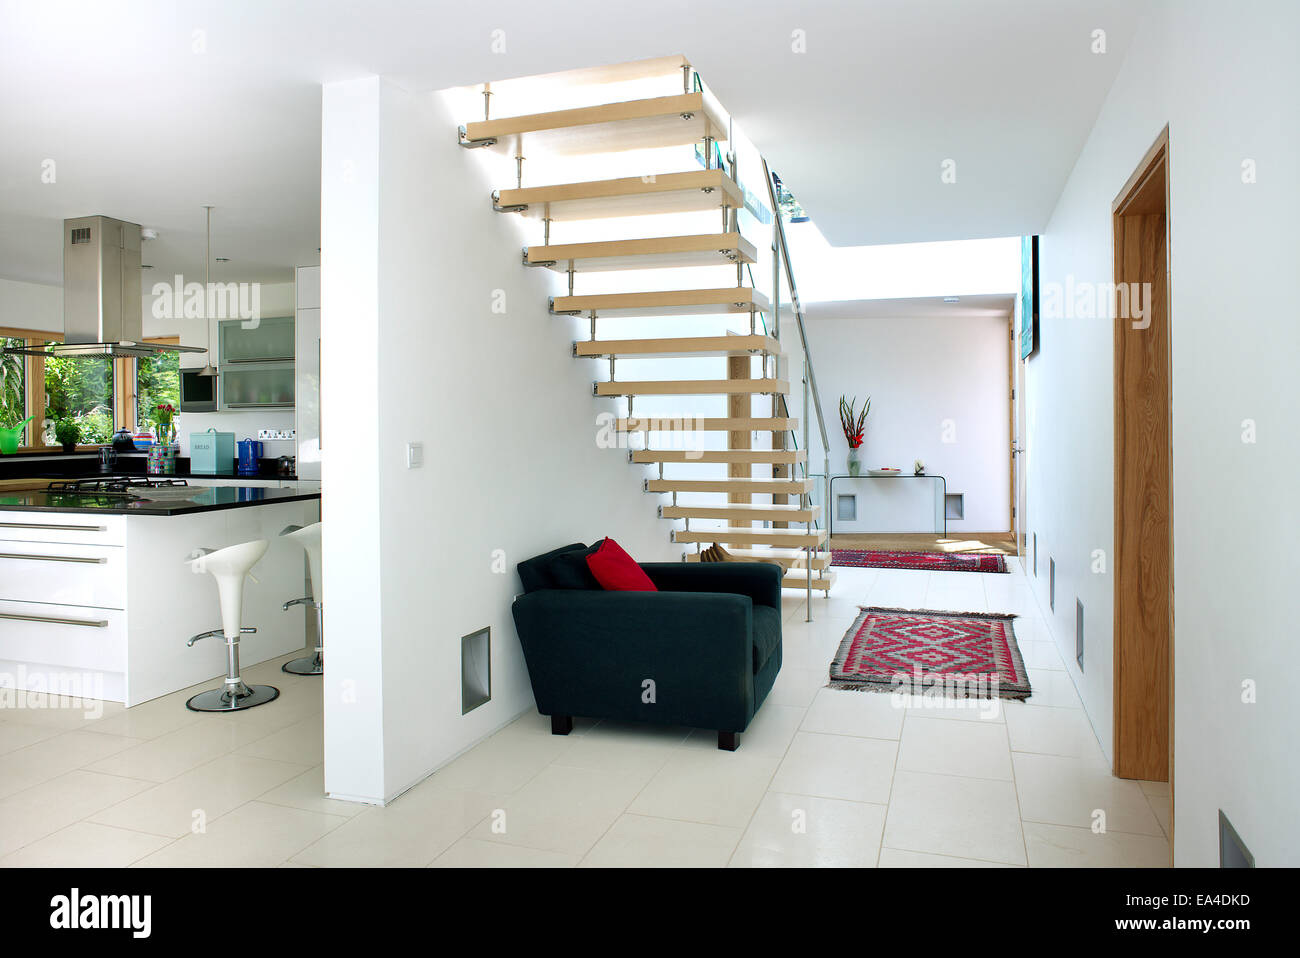 Open plan staircase and hallway with view of kitchen in residential stock photo 75086577 alamy for Open plan hallway and living room